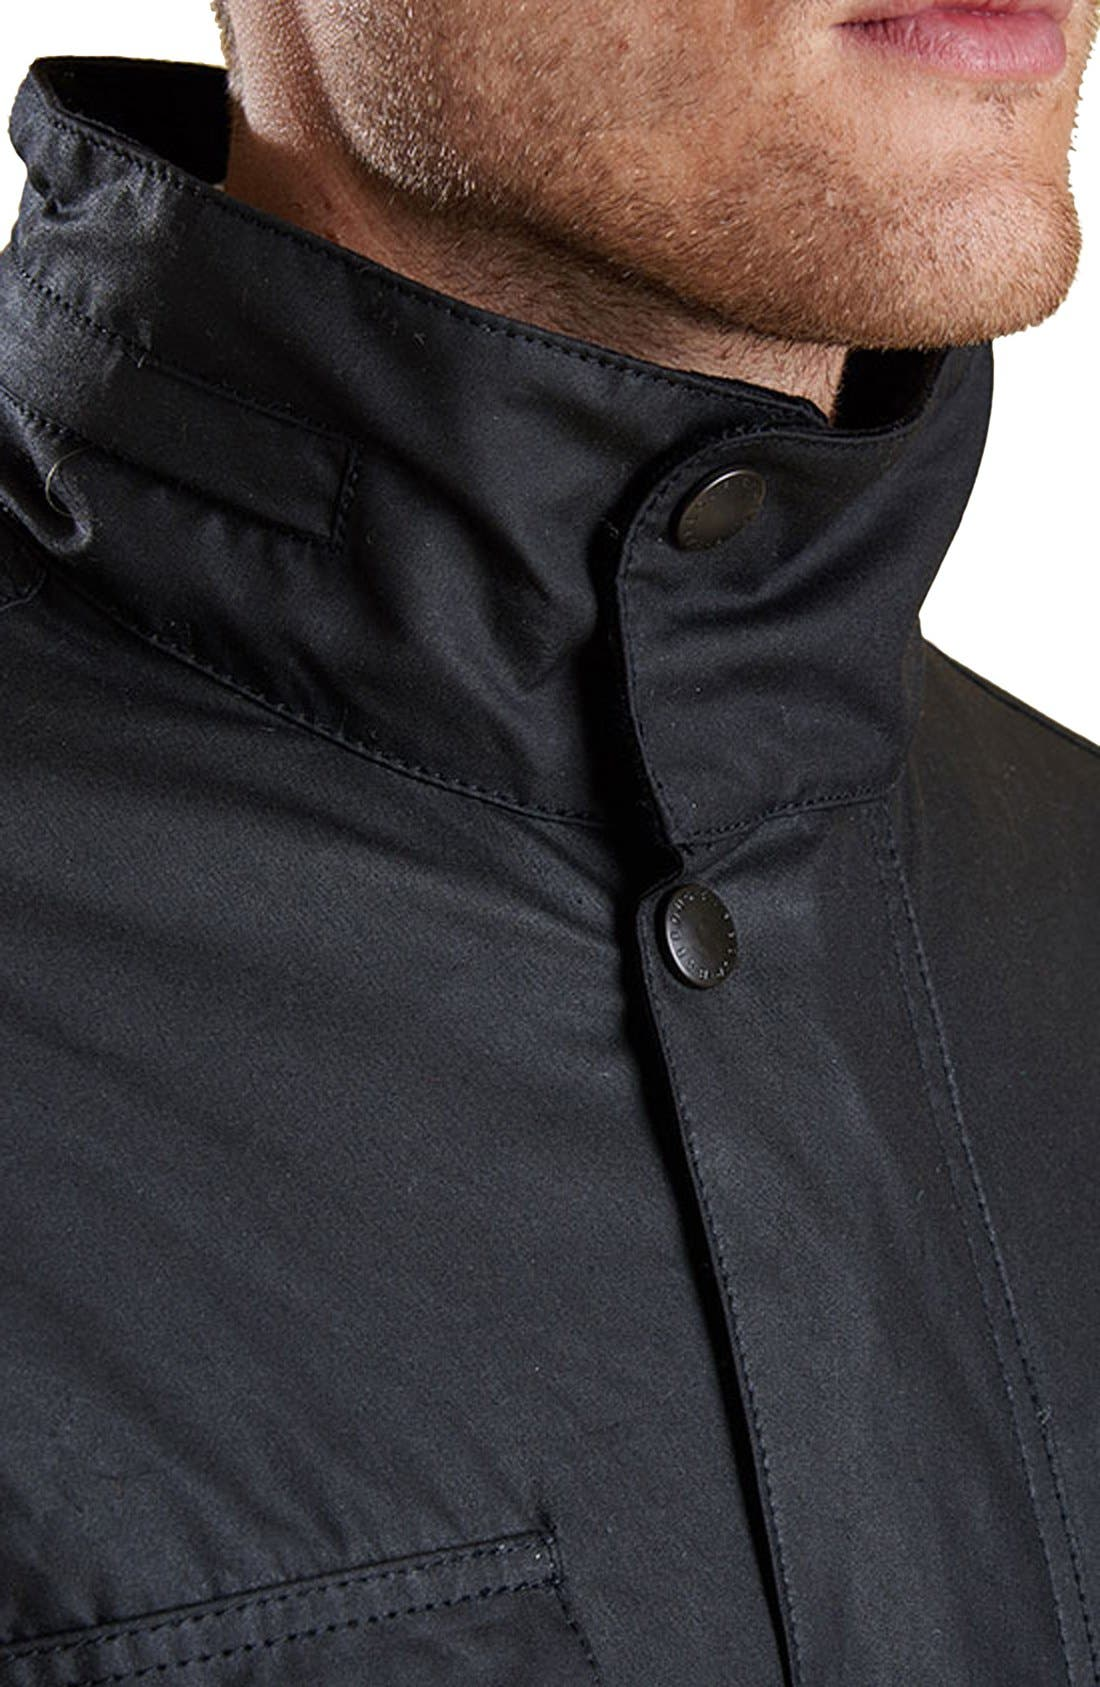 'Sapper' Weatherproof Waxed Relaxed Fit Jacket,                             Alternate thumbnail 3, color,                             001